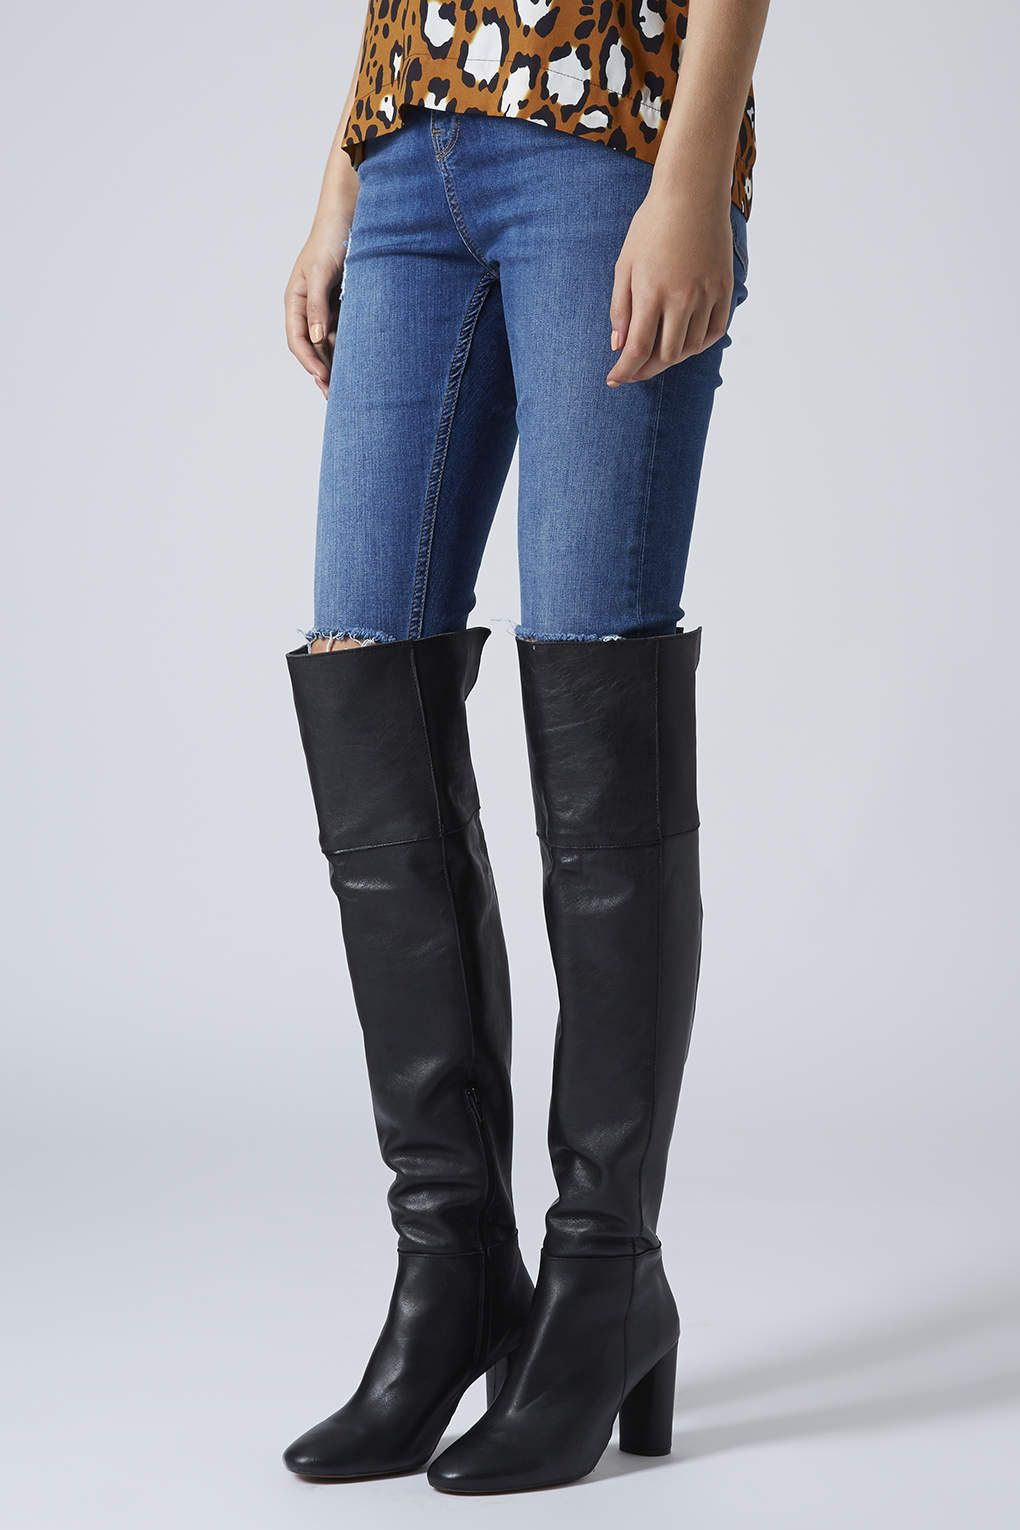 Photo 2 of COLLIDE Leather Over Knee Boots | Fall Wardrobe ...